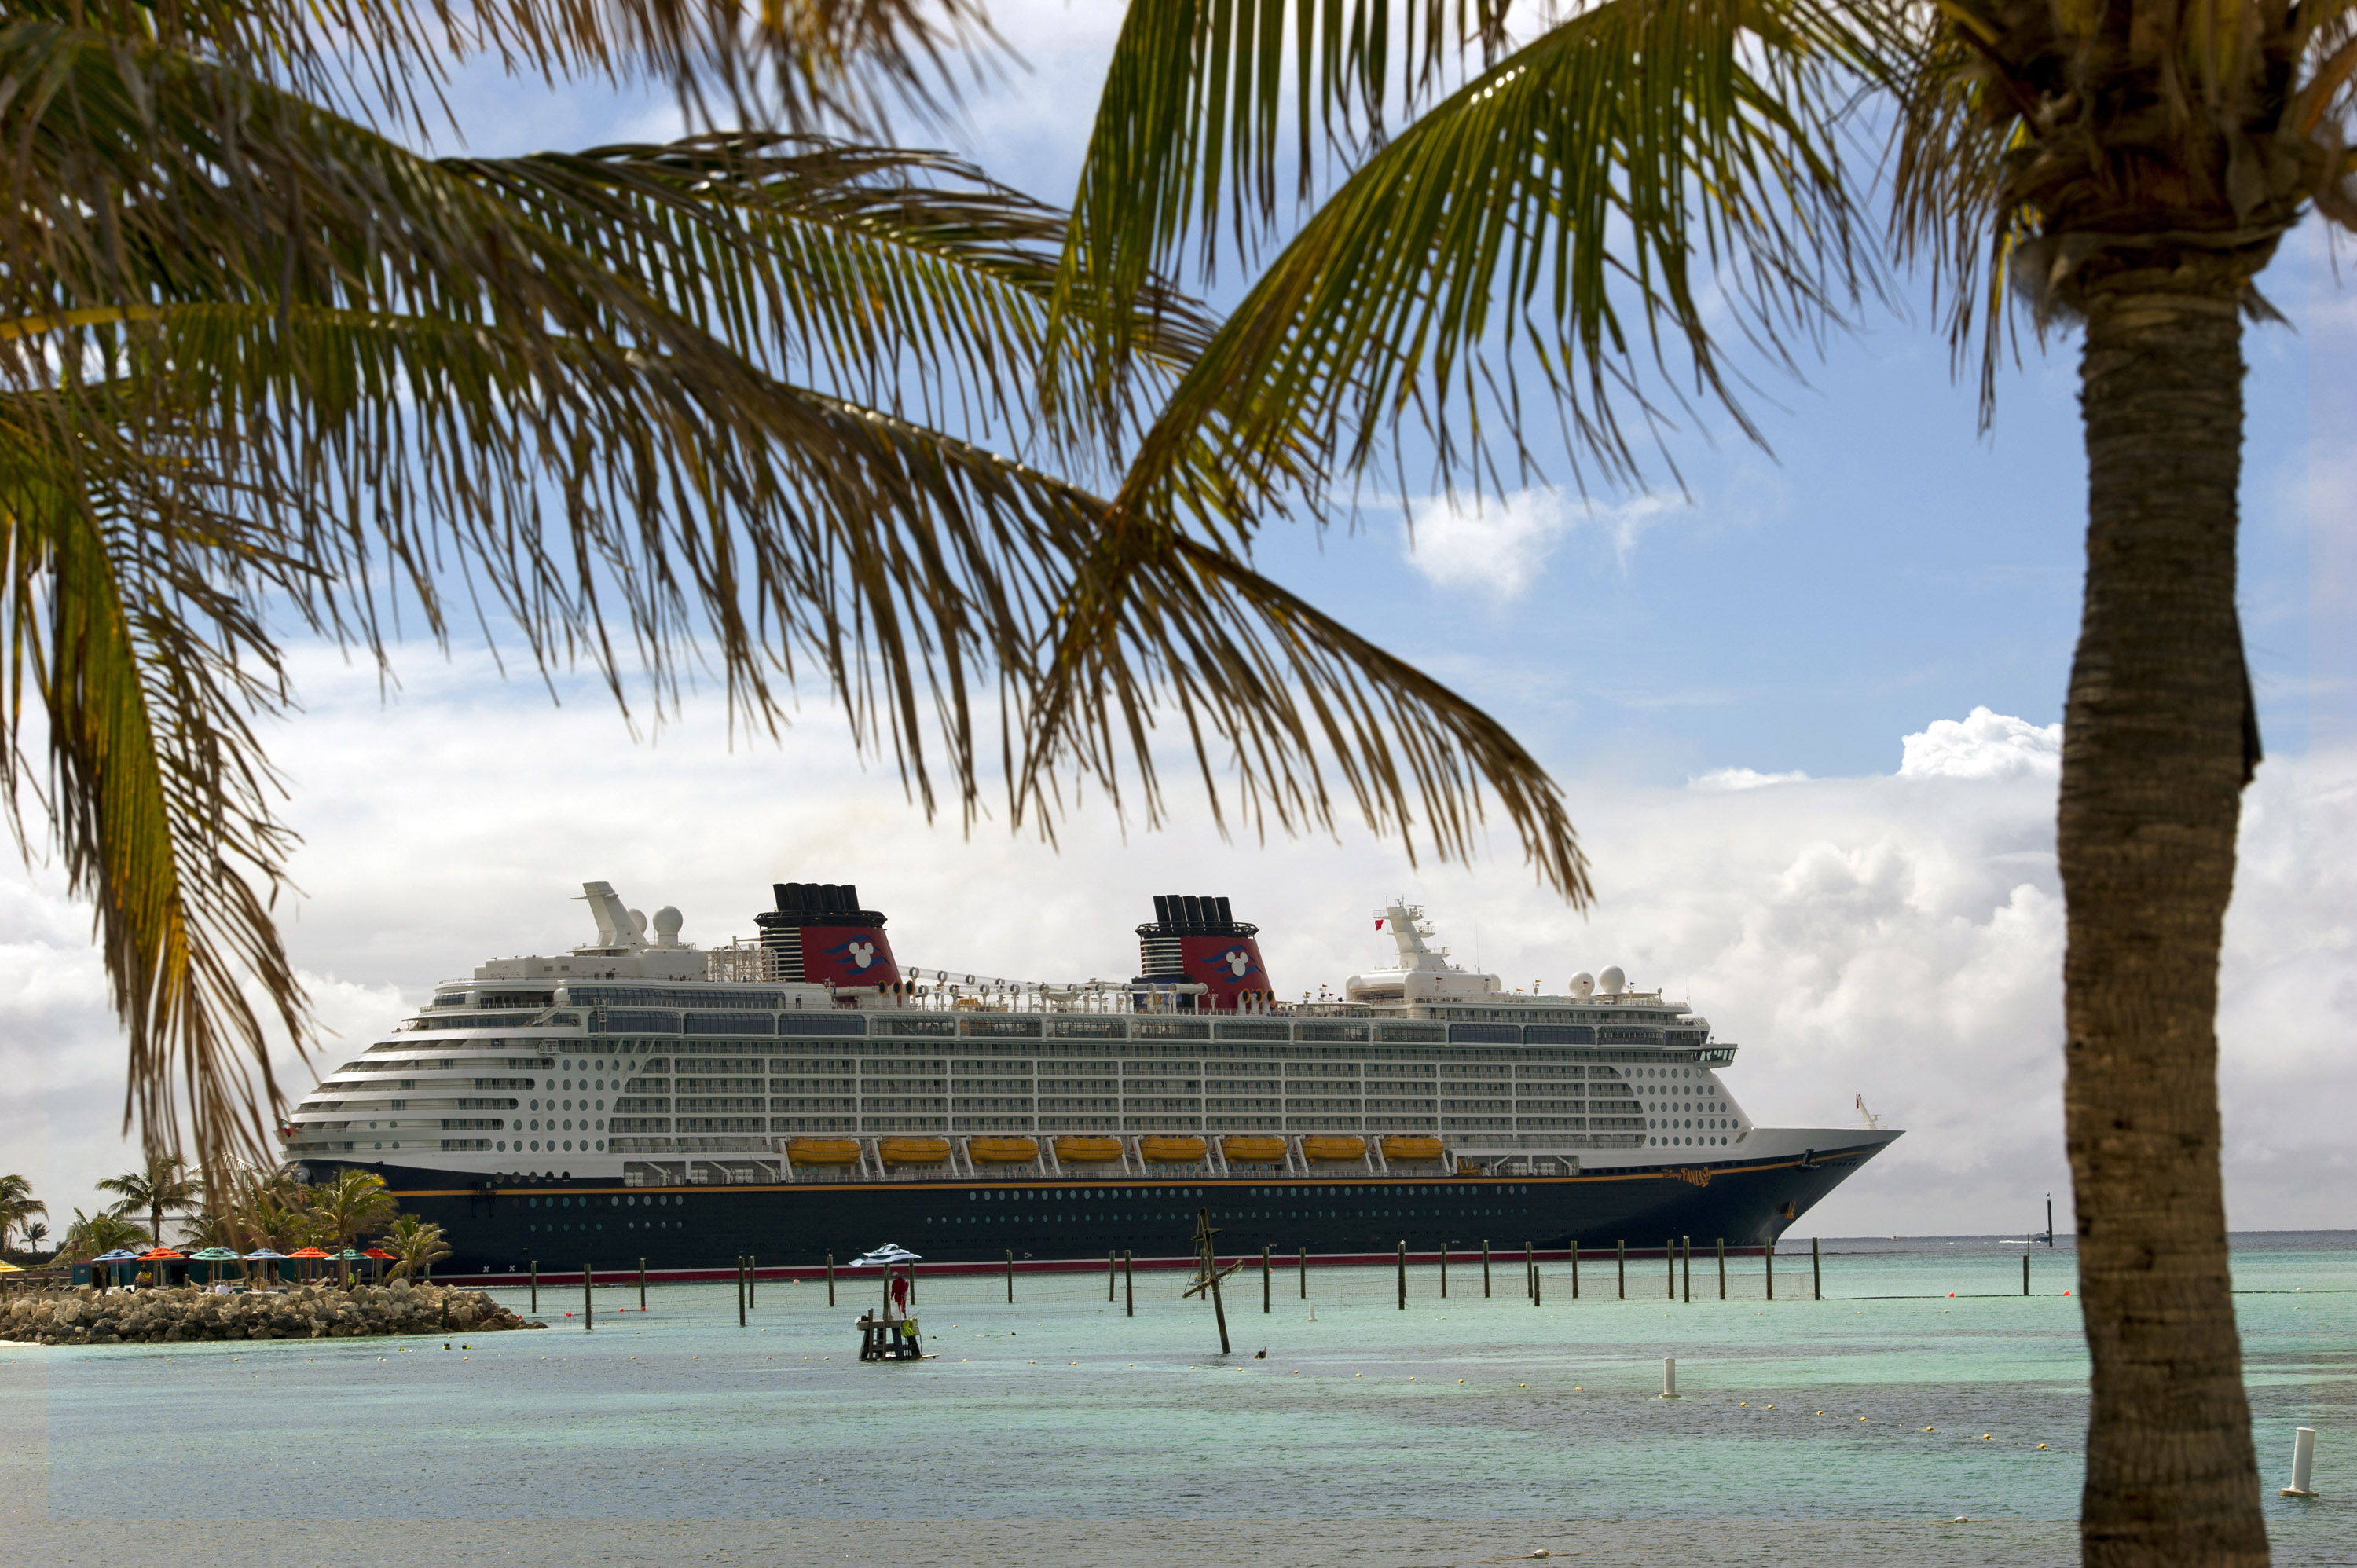 Disney cruise ship seen from Castaway Cay